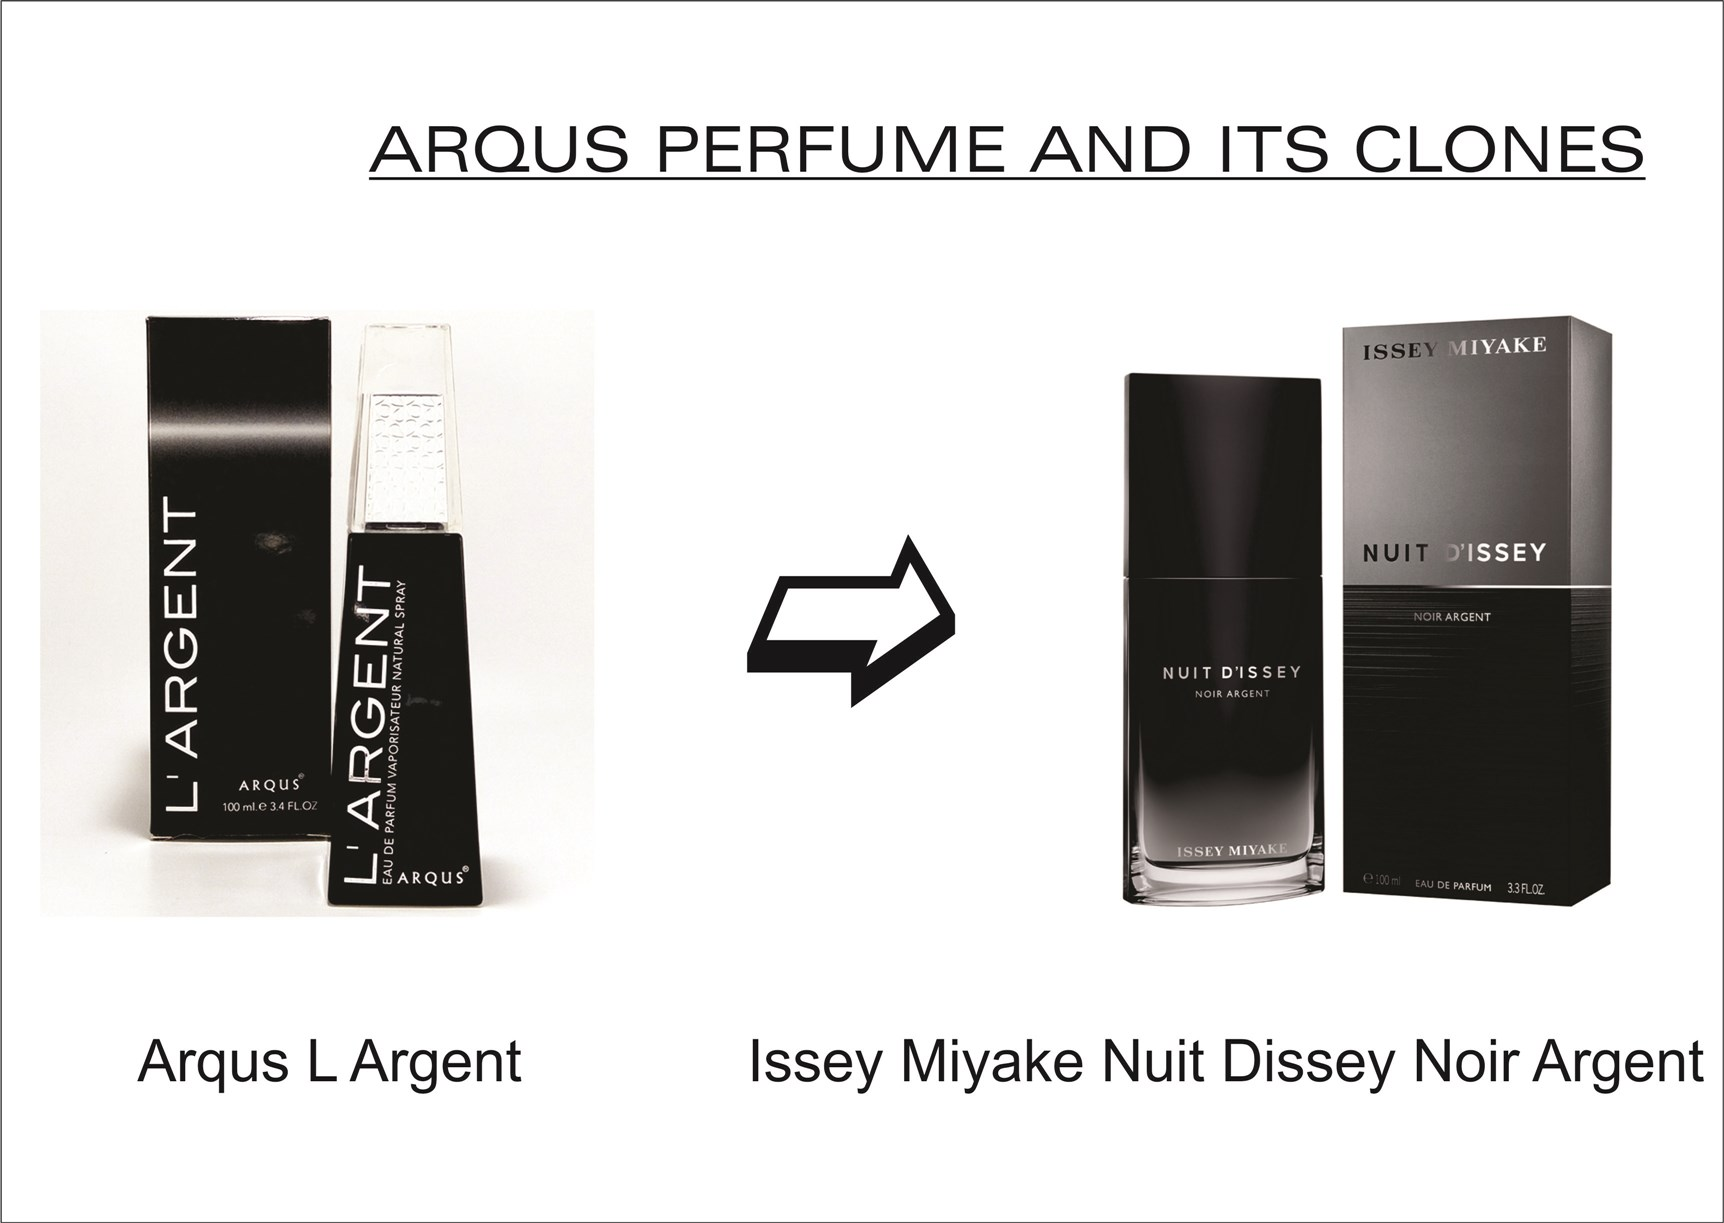 arqus-l-argent-pour-homme-for-men-100-ml-edp-by-lattafa-perfumes-issey-miyake-nuit-dissey-noir-argent-perfume-for-men-125-ml-edp